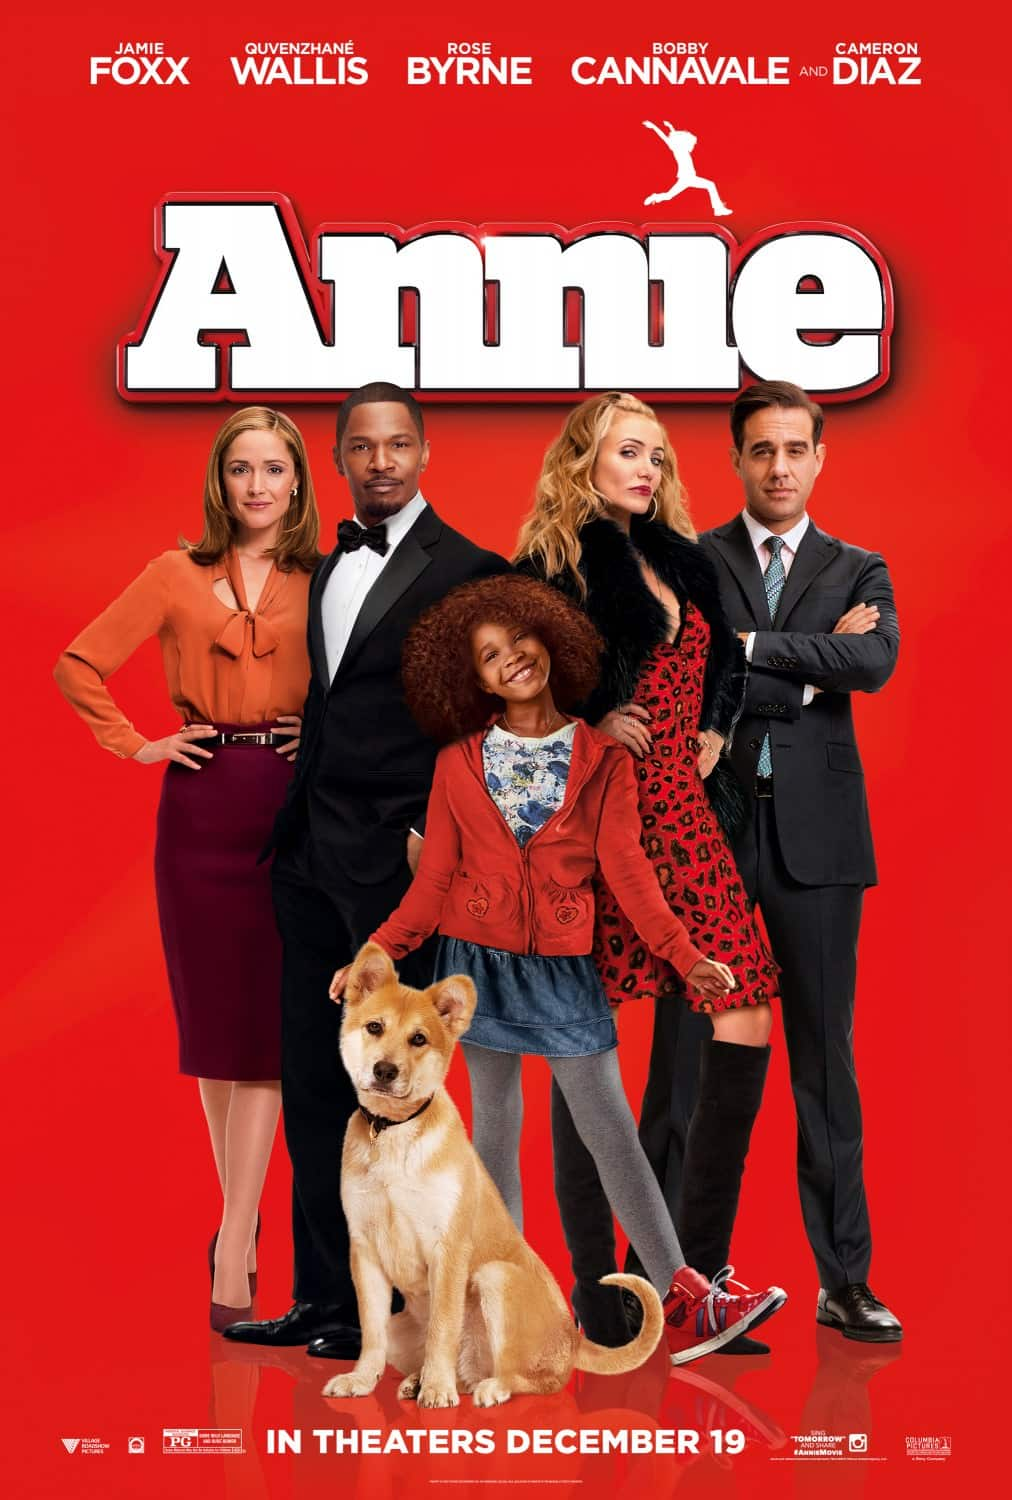 Imagen promocional de Annie, Remake nominada a los Premios Razzies 2014. os Premios Razzie ha anunciado los nominados a los premios Razzie de 2014, entre los principales nominados están 'Transformers: Age of Extinction', 'A Million Ways to Die' y 'Teenage Mutant Ninja Turtles'.  Los Premios Razzies 2014 han revelado sus nominados, Los nominados a Peor Remake son: Annie Atlas Shrugged Part III: Who Is John Galt? The Legend of Hercules Teenage Mutant Ninja Turtles Transformers 4: Age of Extinction